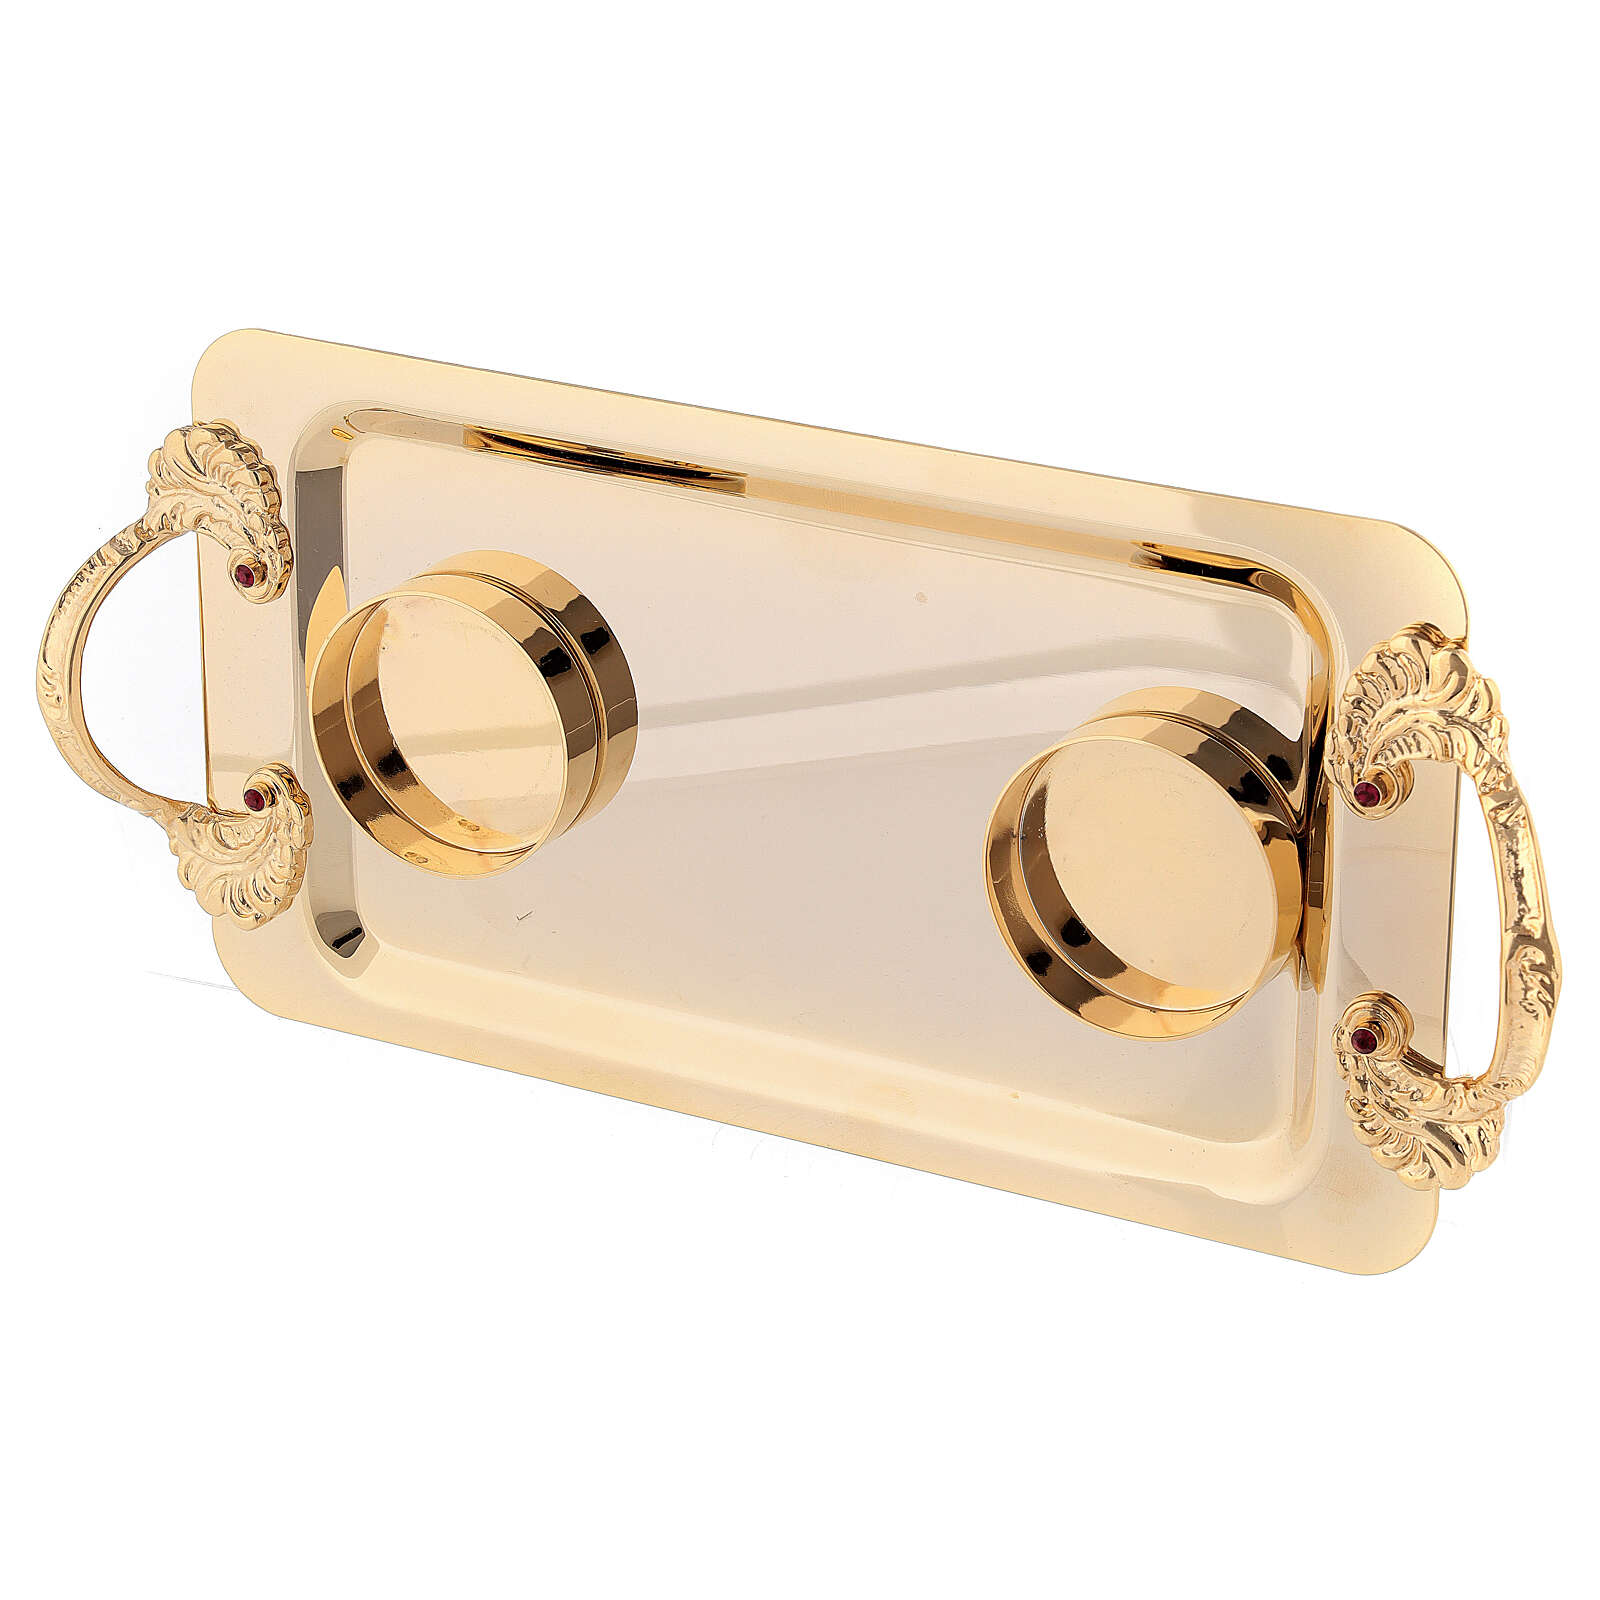 Double oil stock for Baptism with 24-karat gold plated shell 4